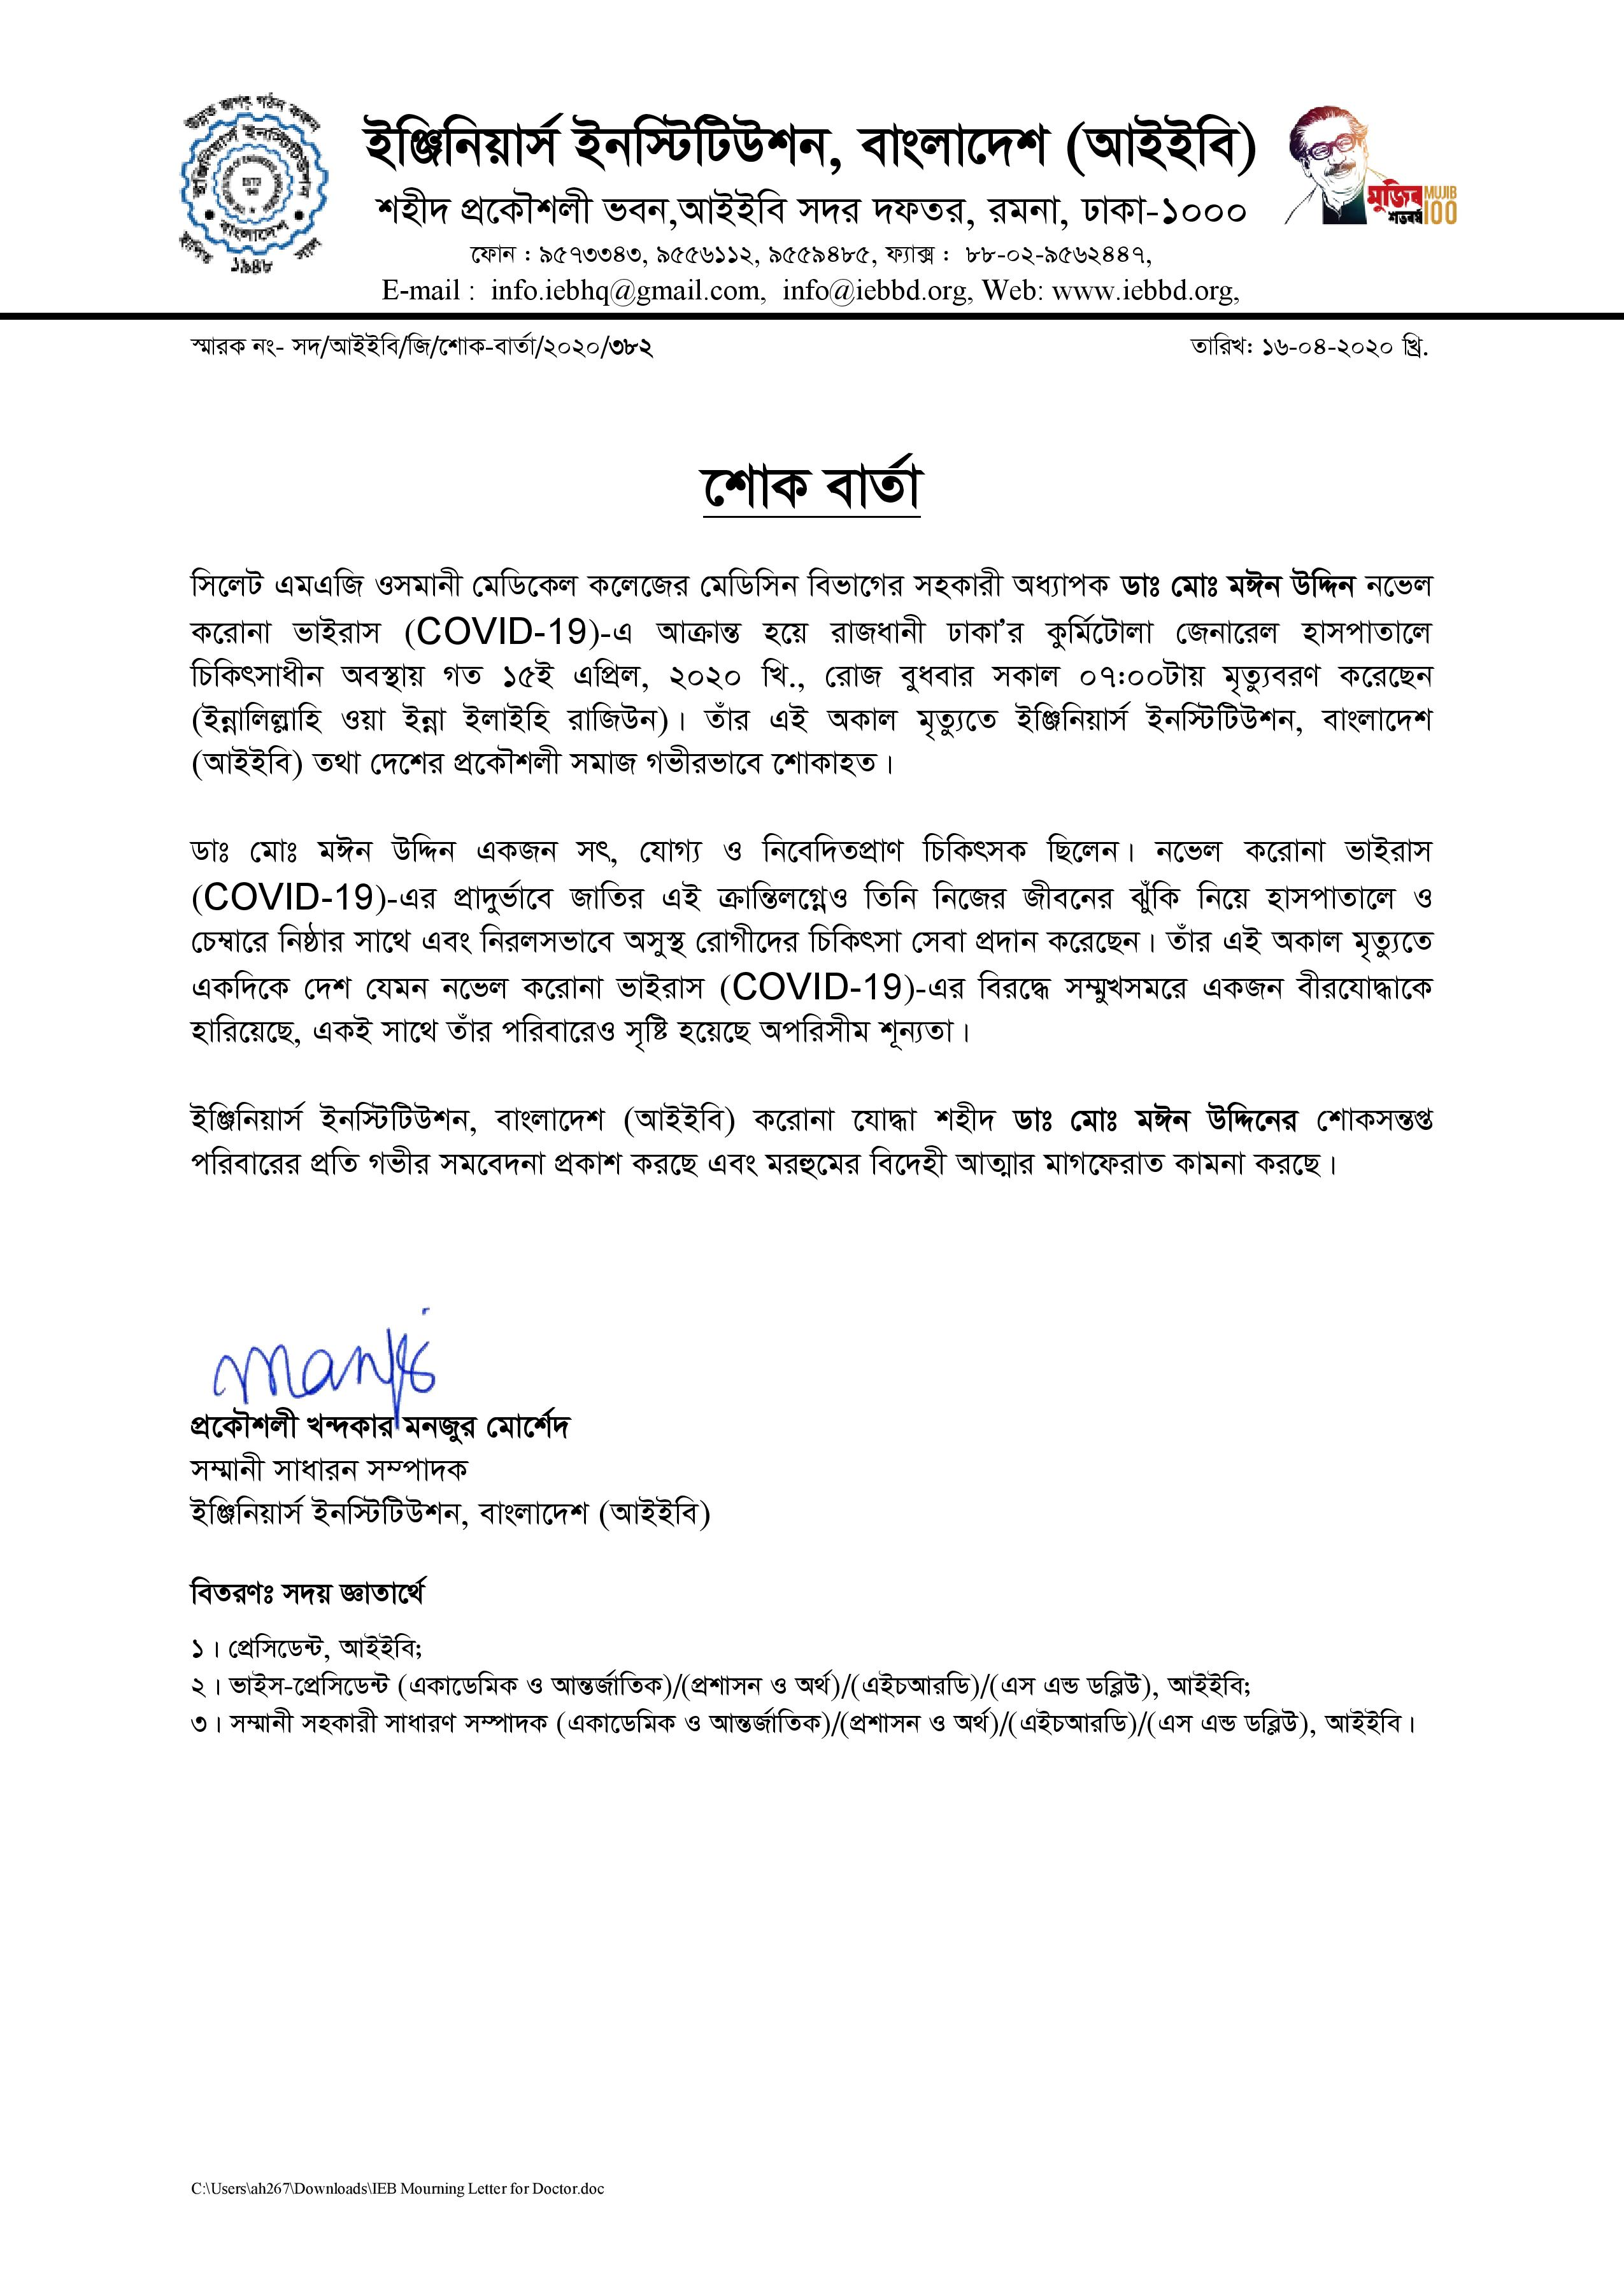 Message of condolence for Dr. Moinuddin